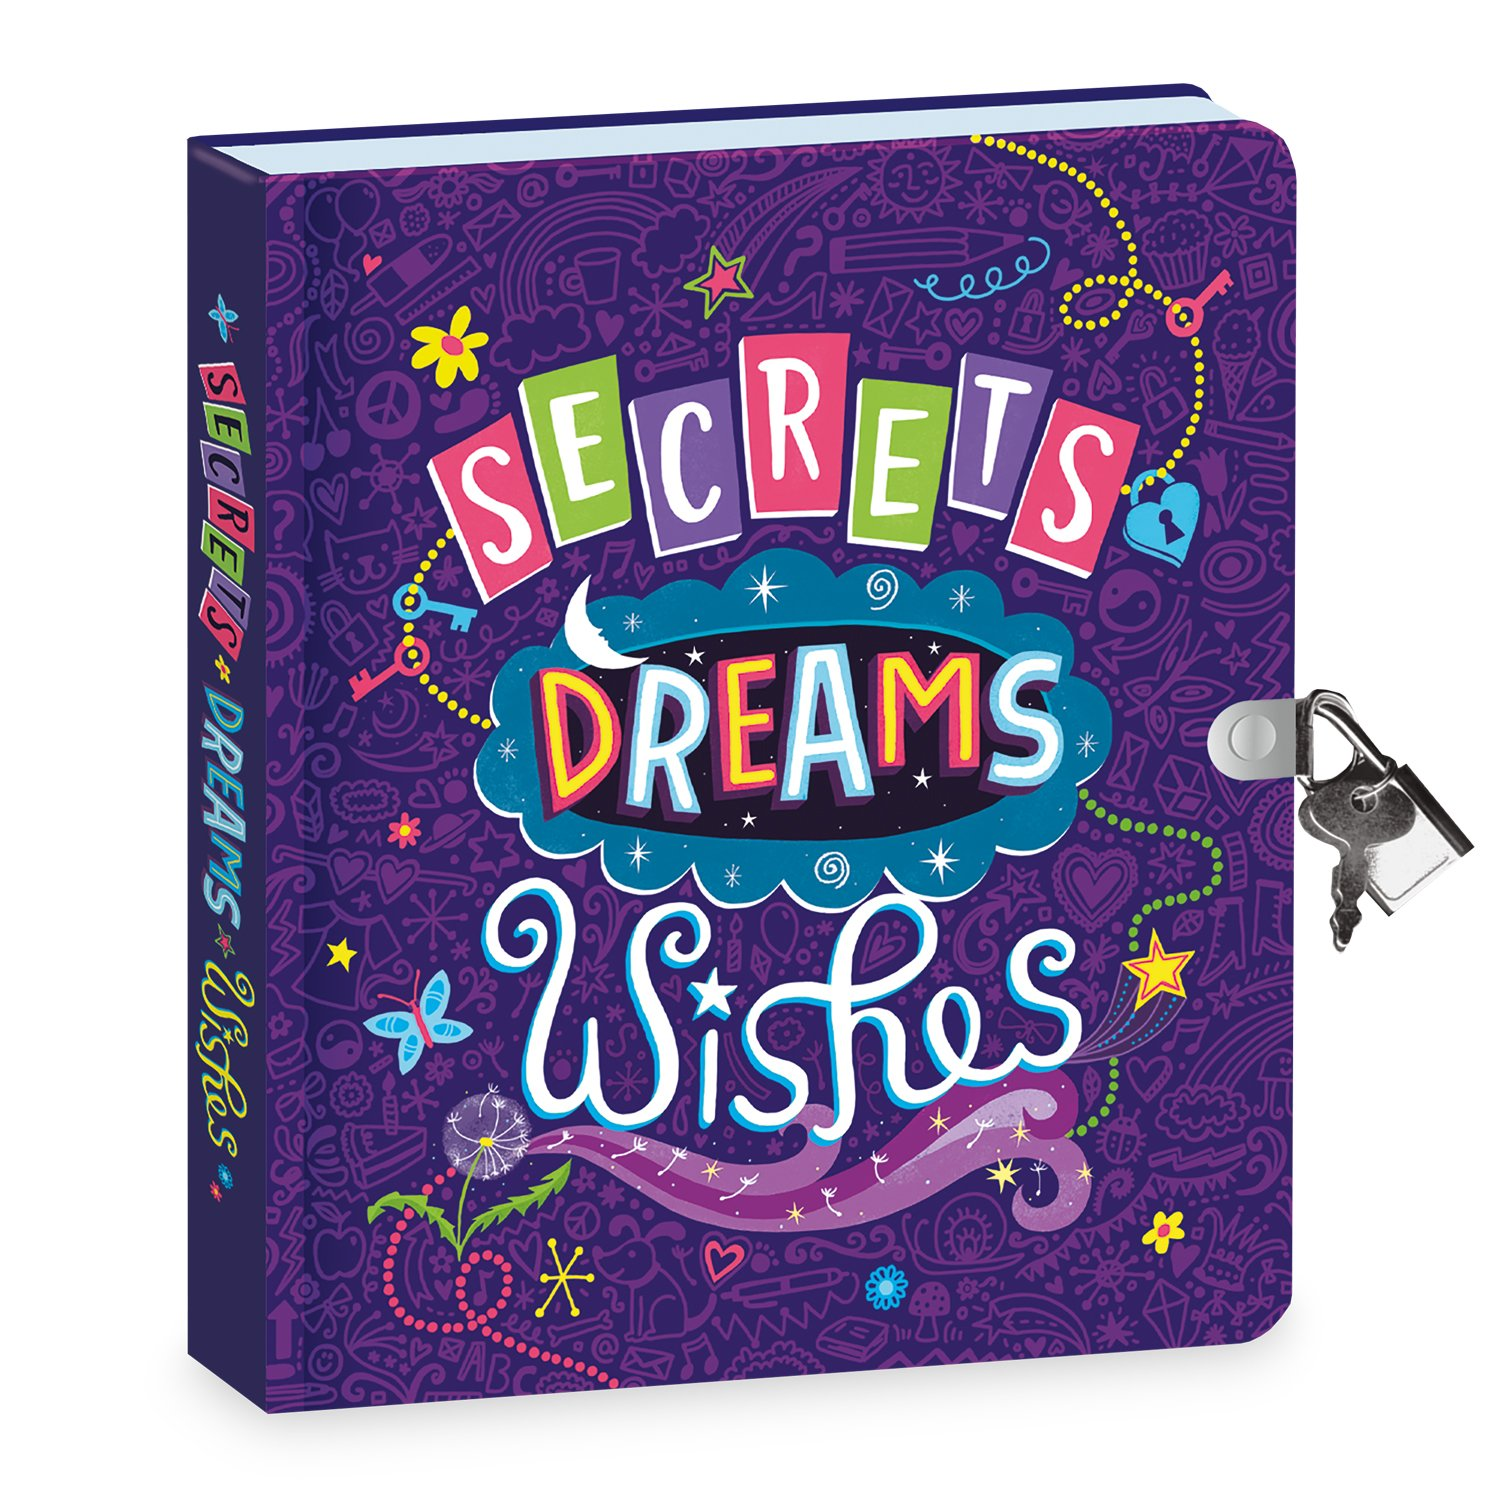 Peaceable Kingdom Secrets, Dreams and Wishes Glow in the Dark 6.25'' Lock and Key, Lined Page Diary for Kids by Peaceable Kingdom